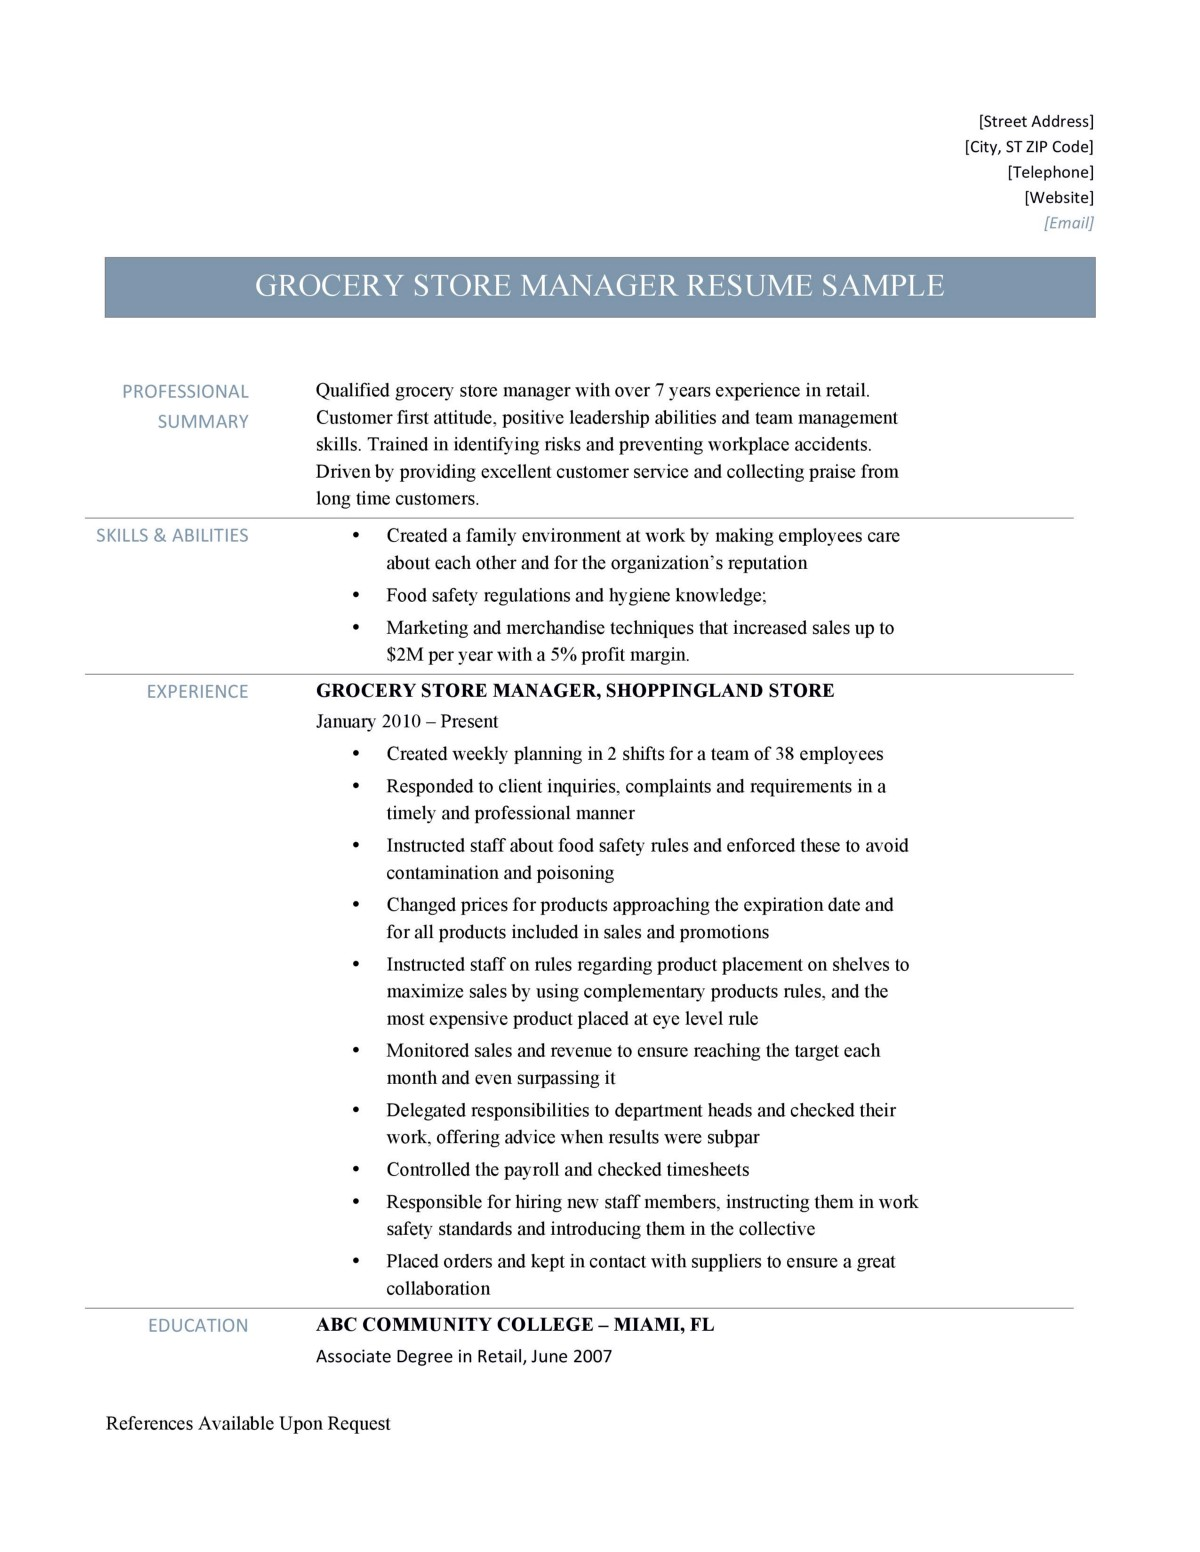 Grocery Store Manager Resume Samples By Online Resume Builders